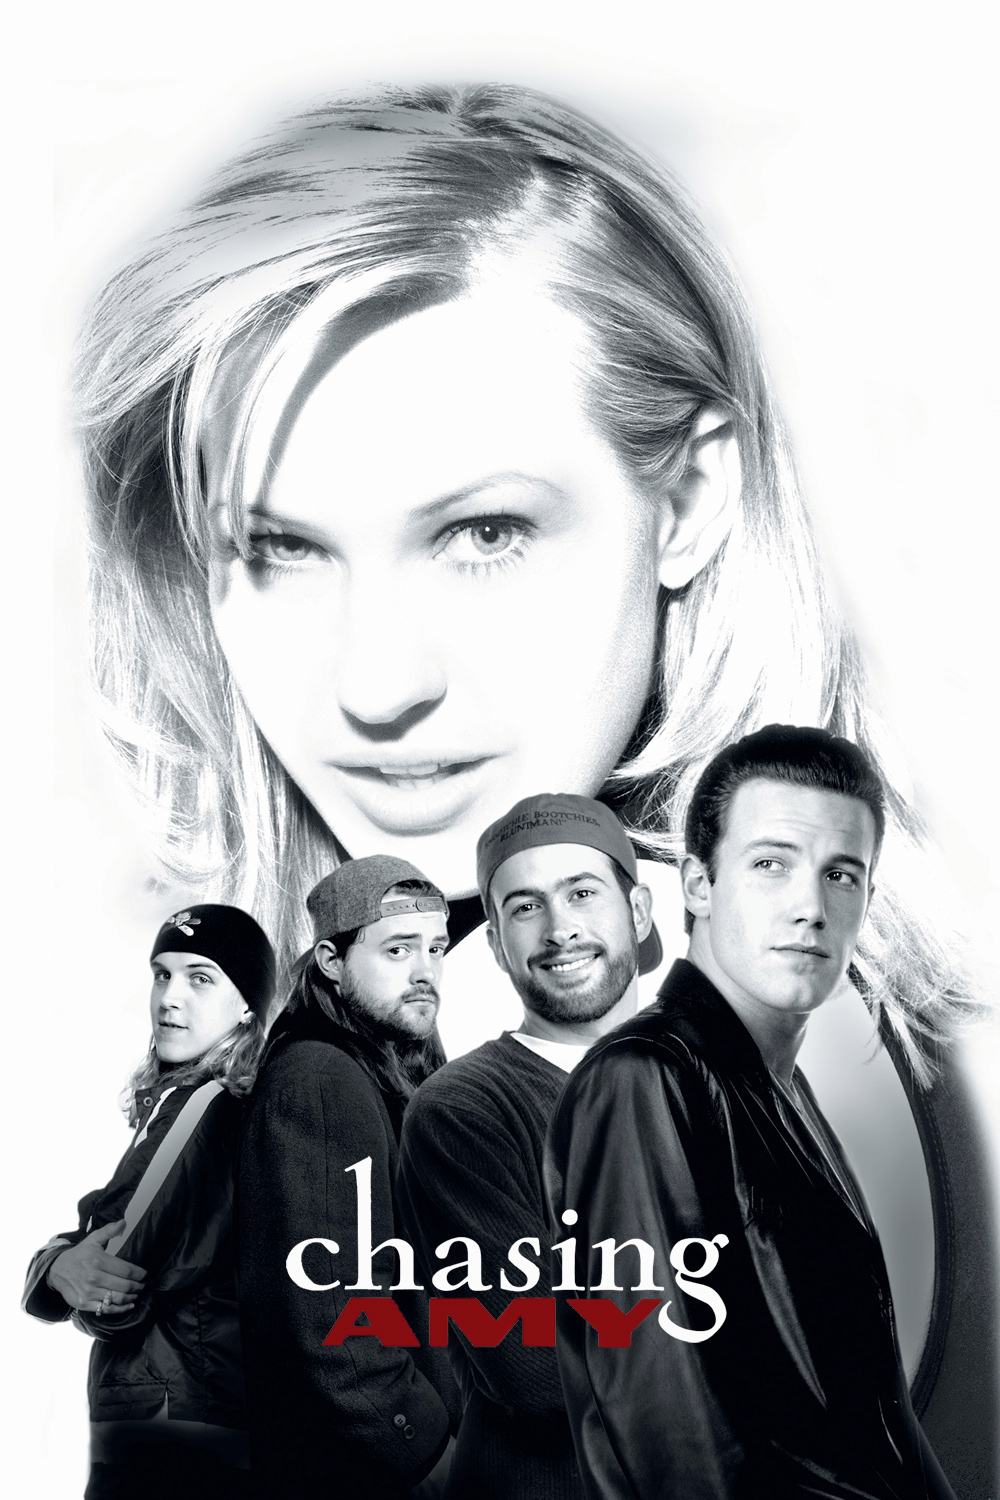 Movies - Chasing Amy